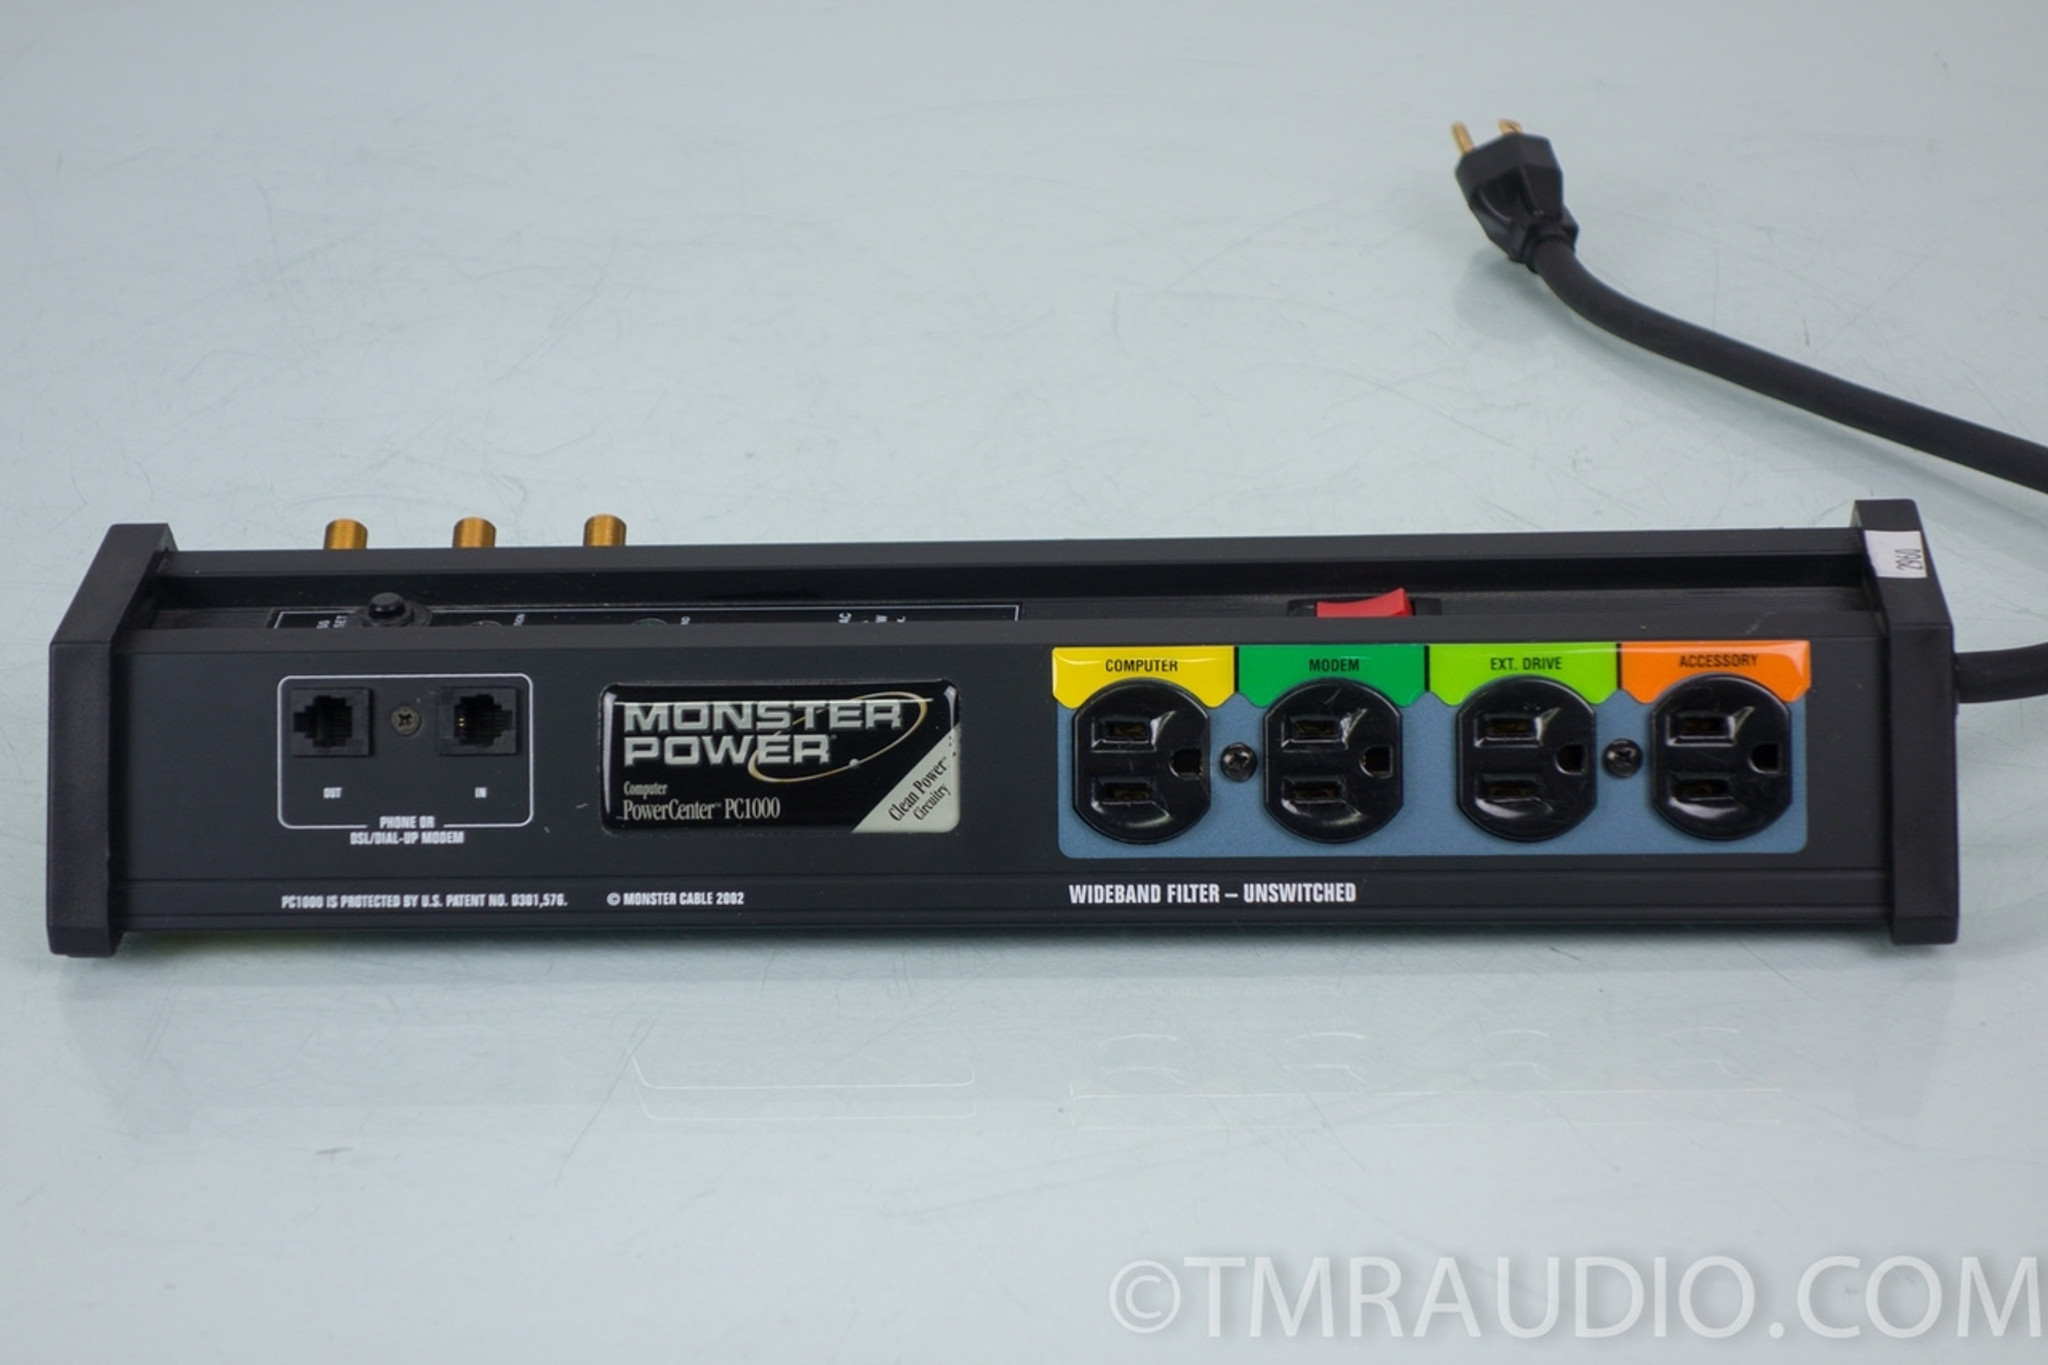 Monster PC1000 PowerCenter Surge Protector - The Music Room